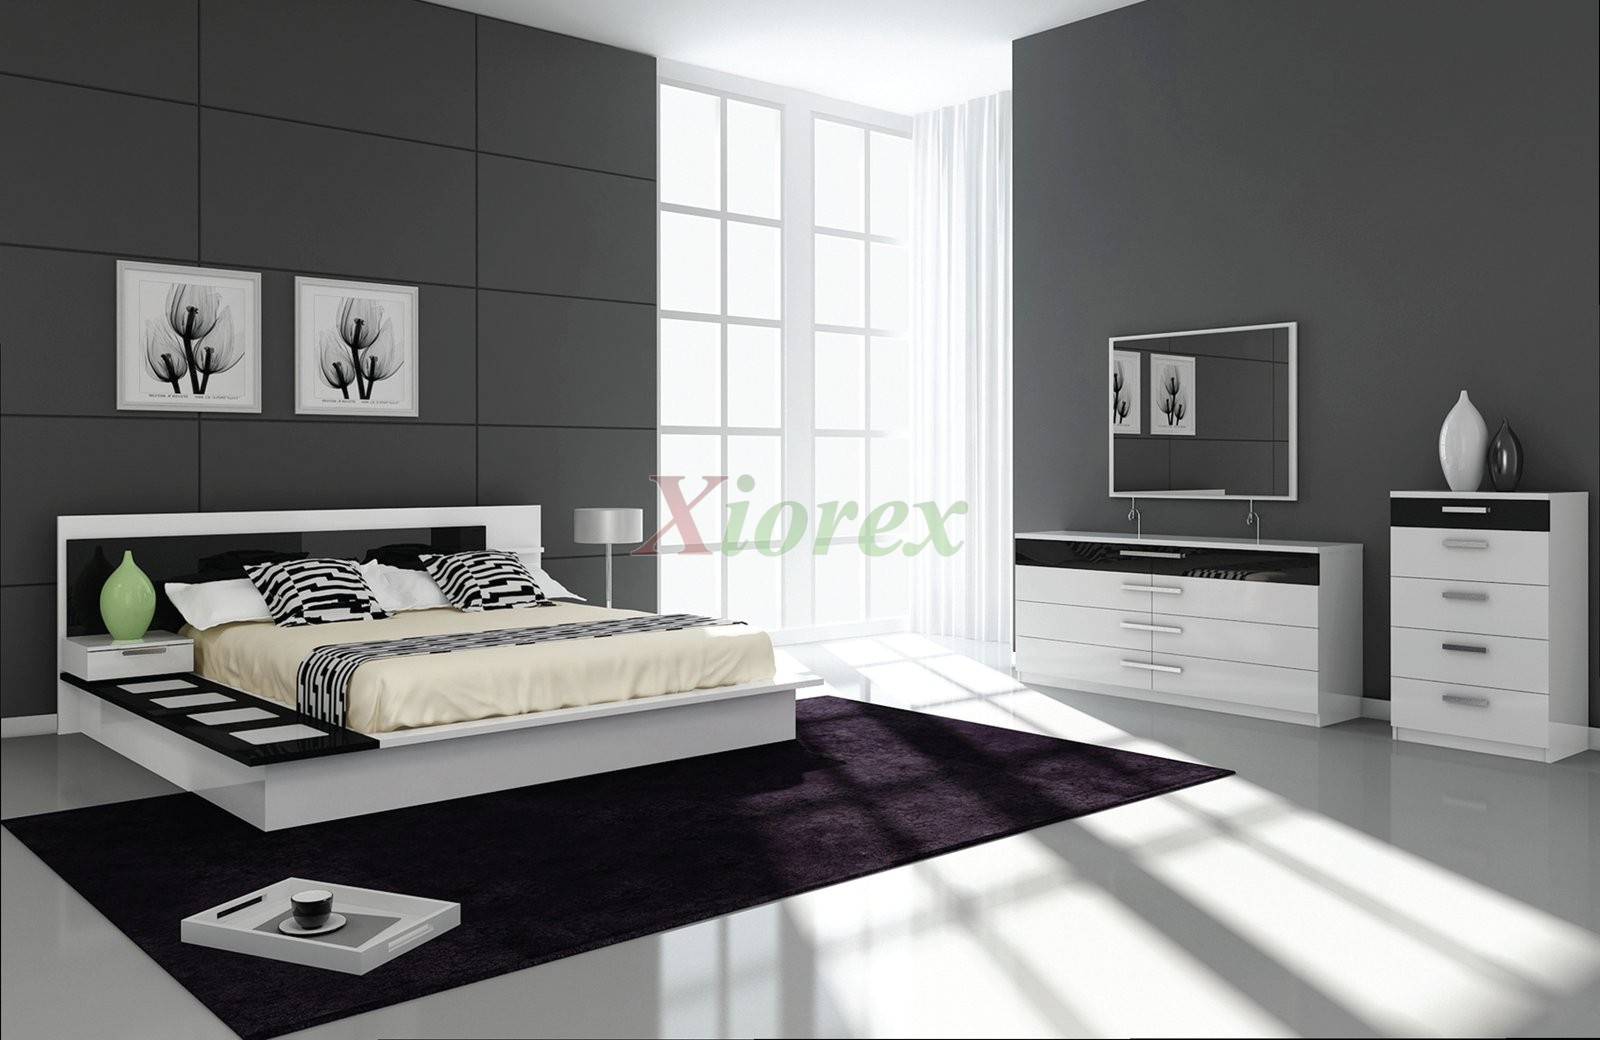 Black White Bedroom Furniture: Draco Black And White Contemporary Bedroom Furniture Sets